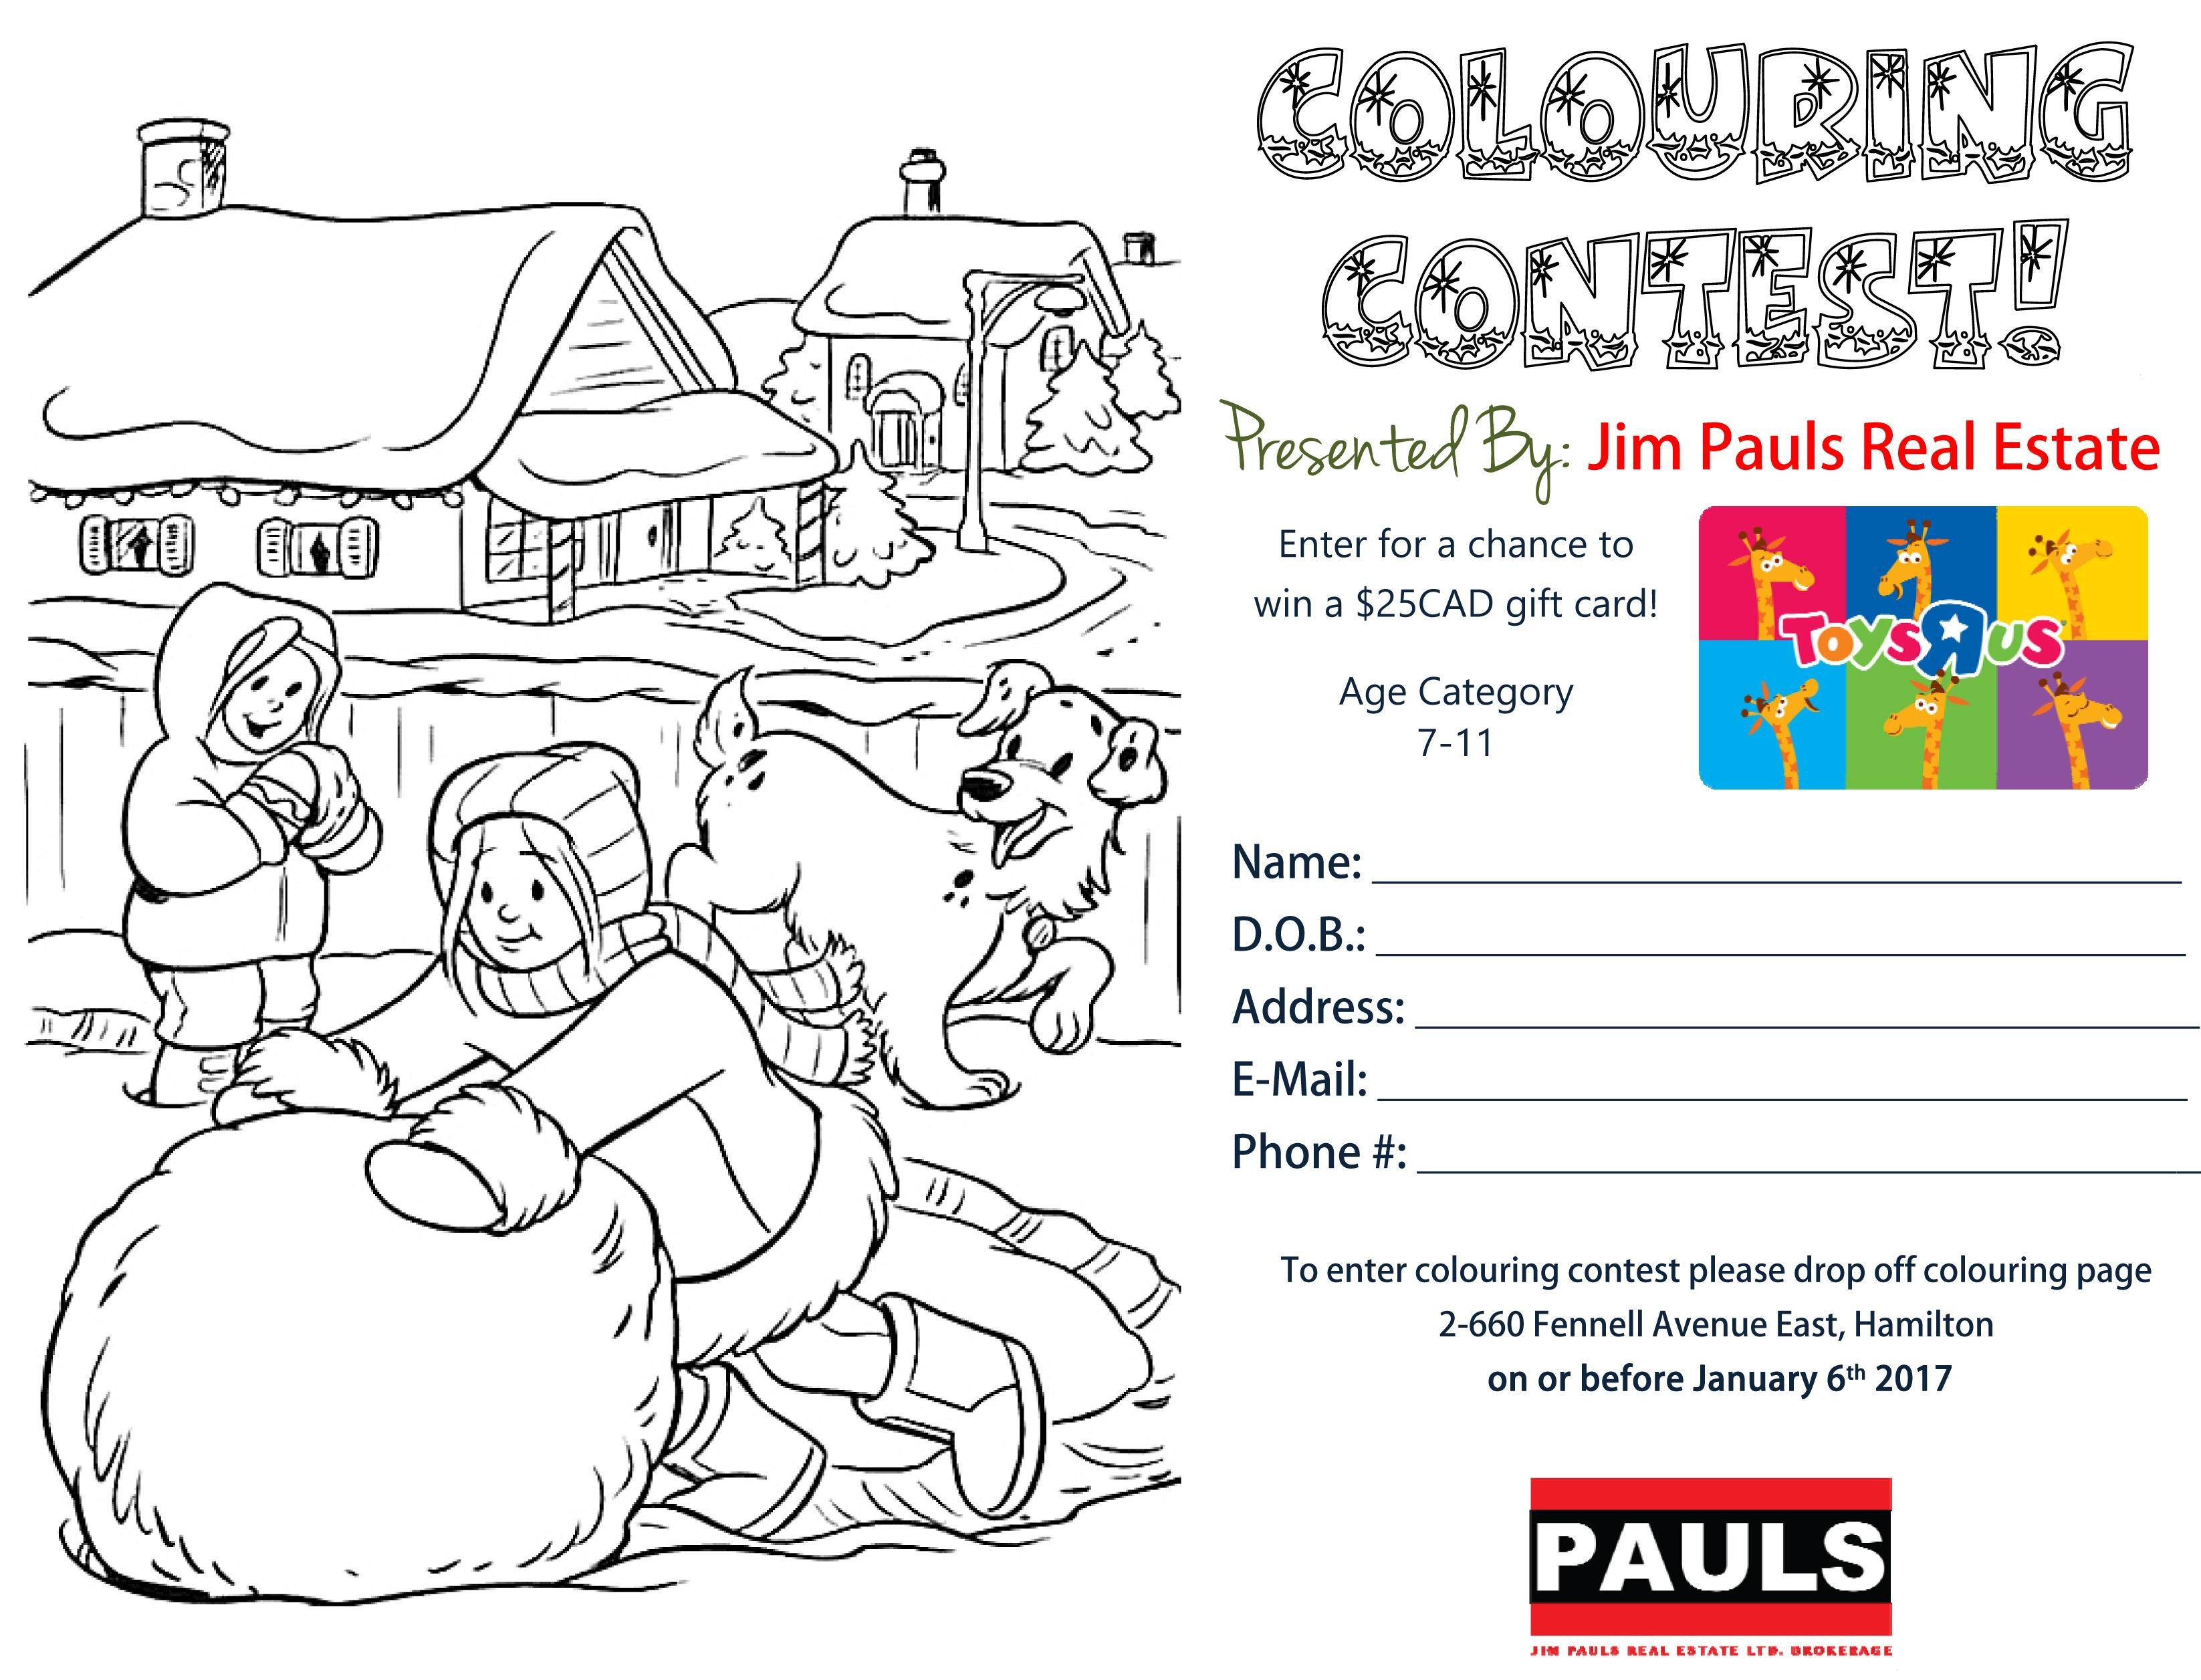 7-11 Colouring Contest